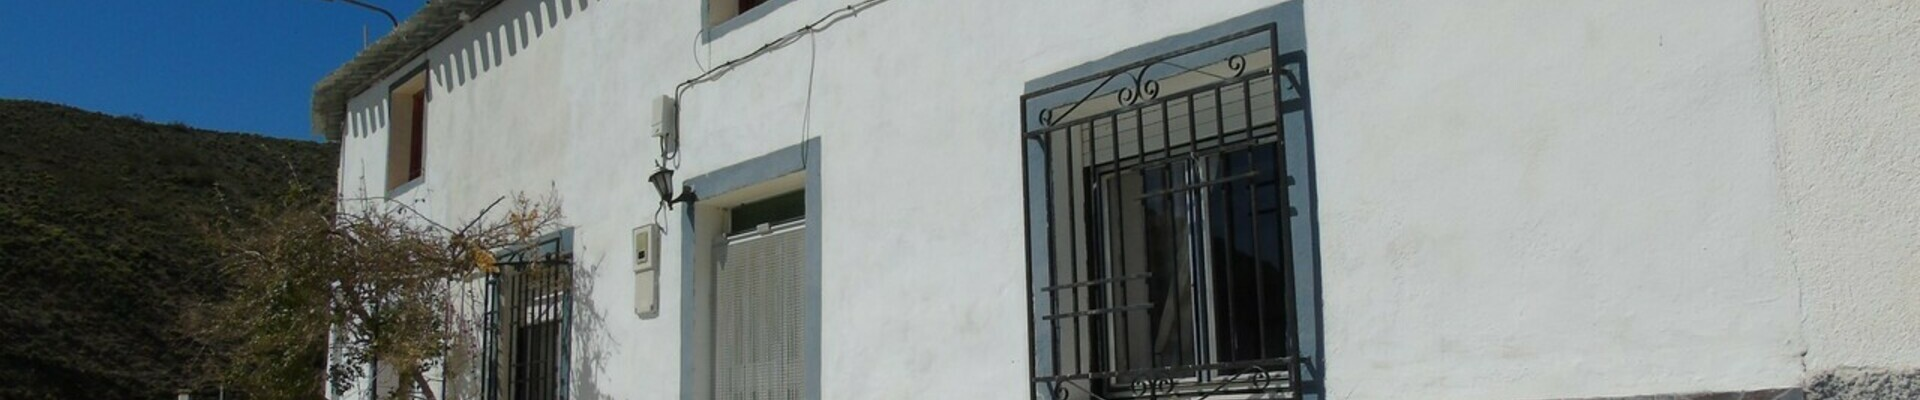 AF556: 3 Bedroom Cortijo for Sale